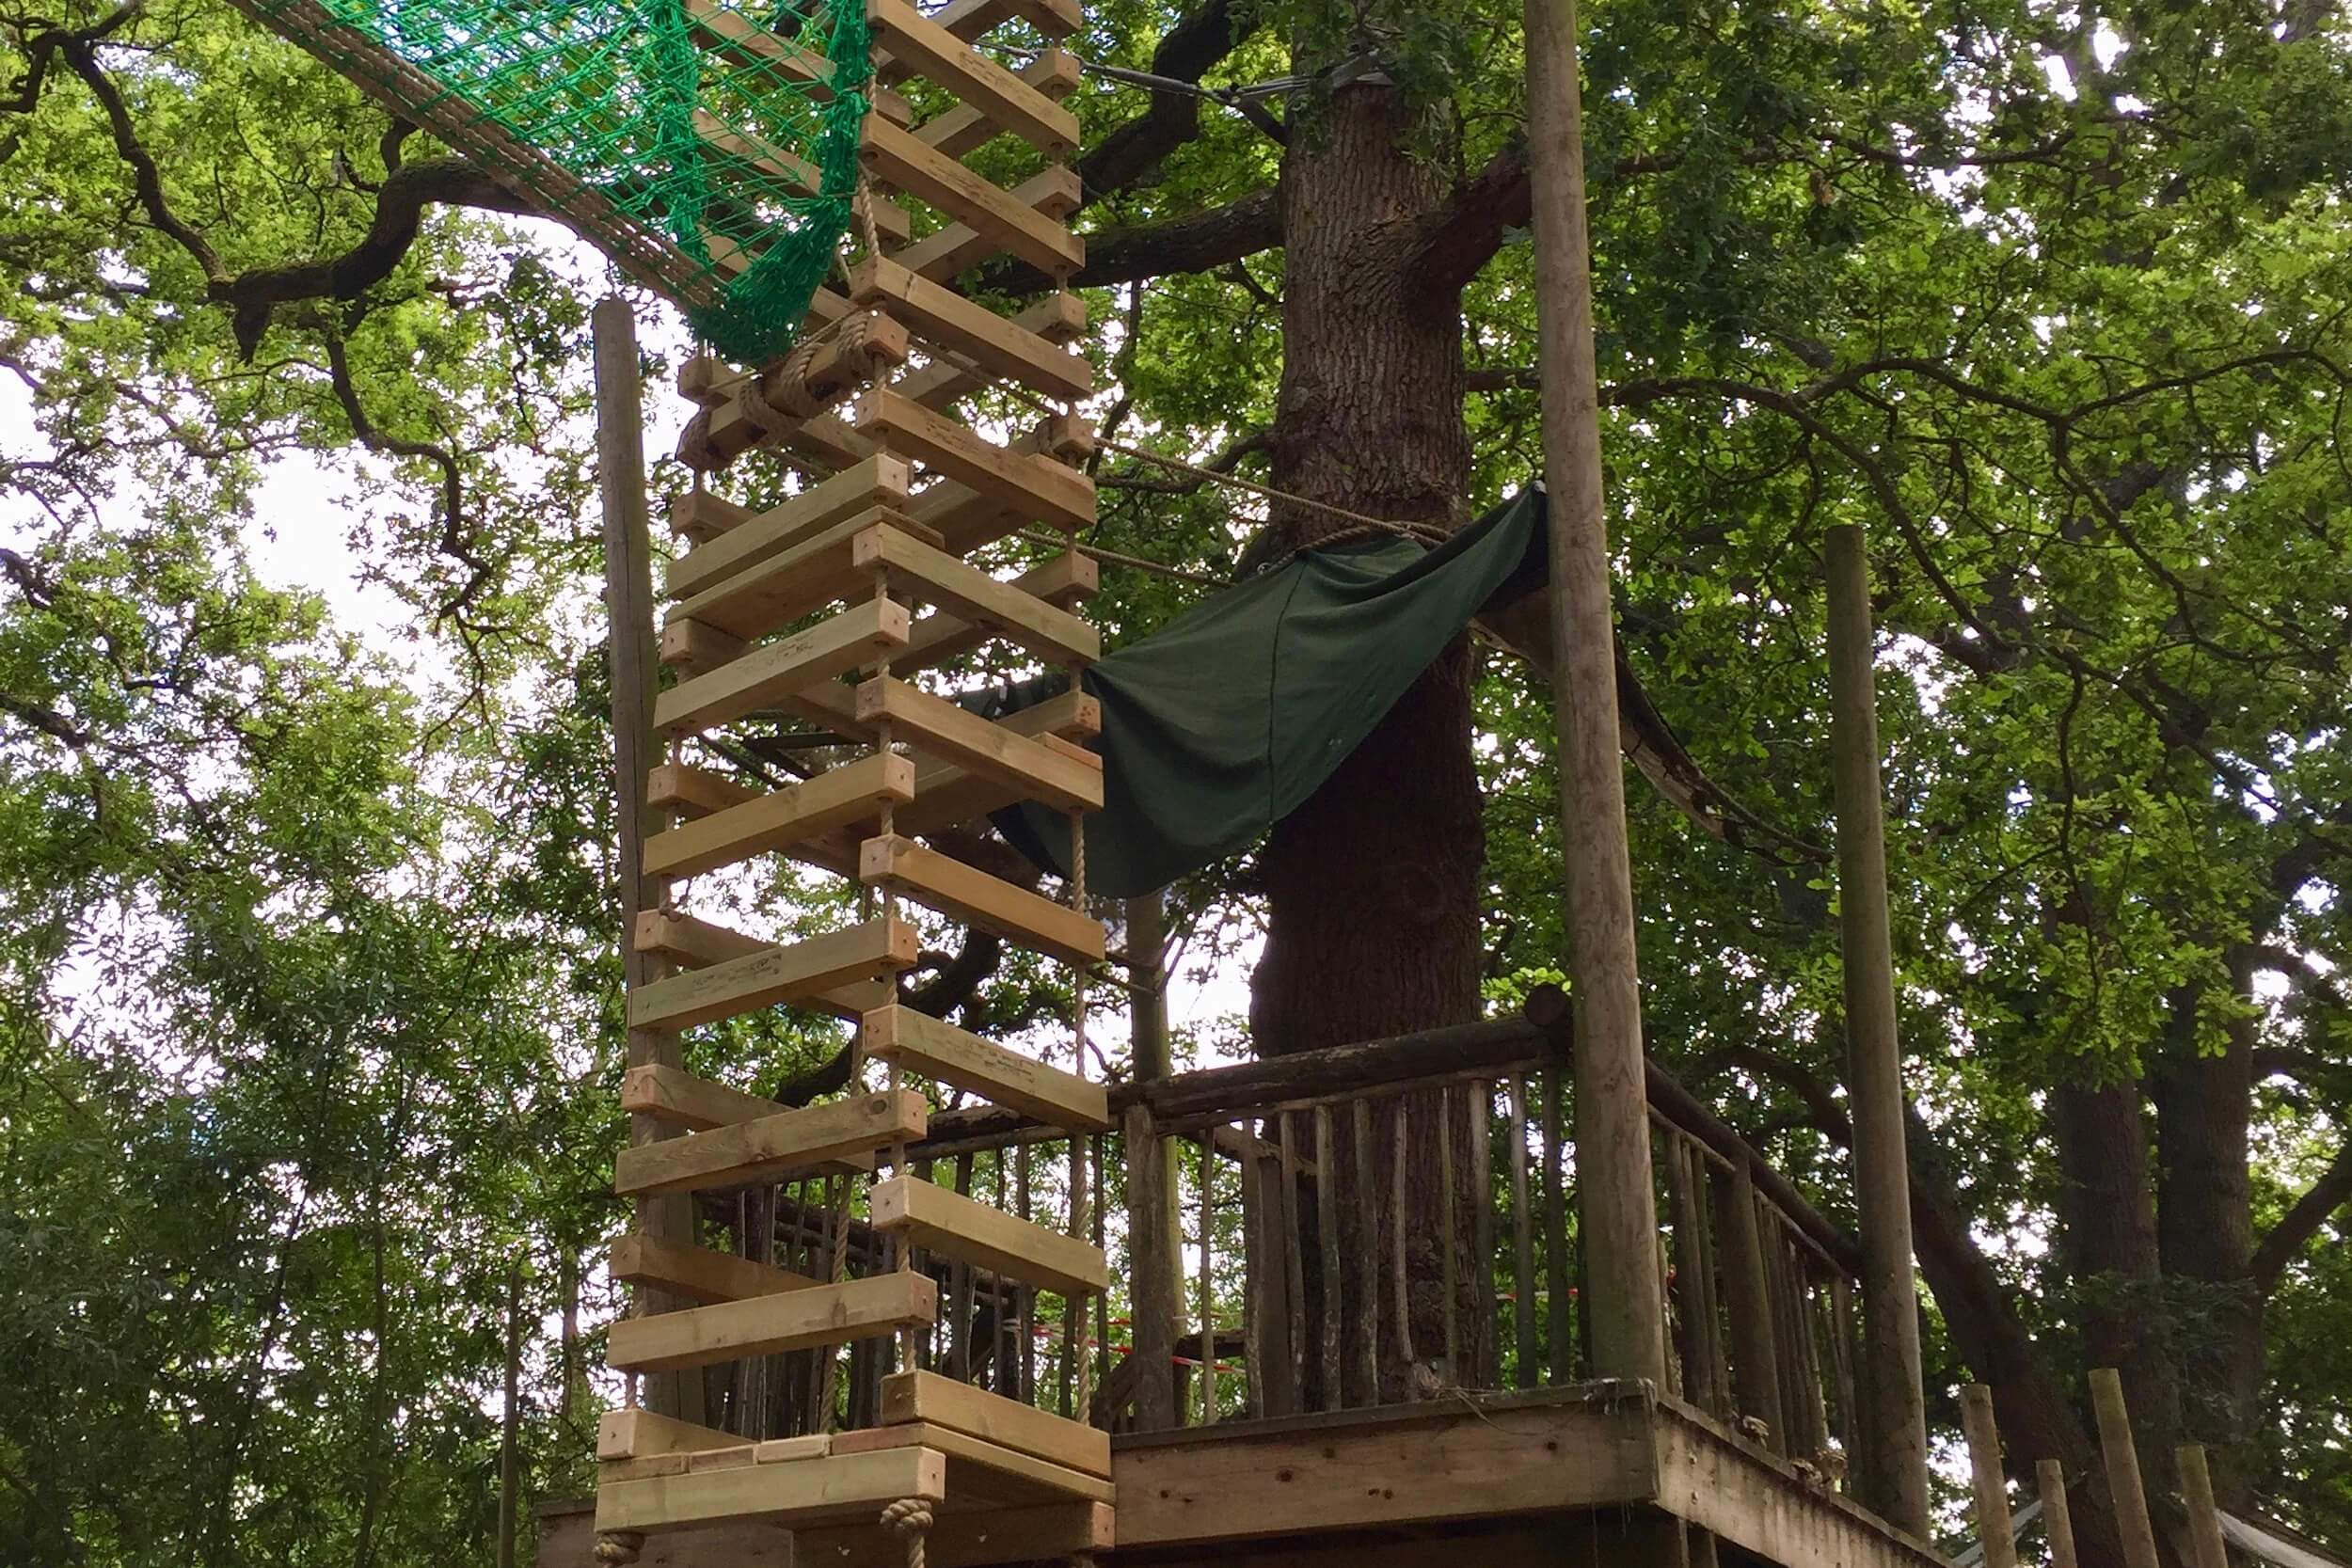 Suspended 4-sided Rope Ladder